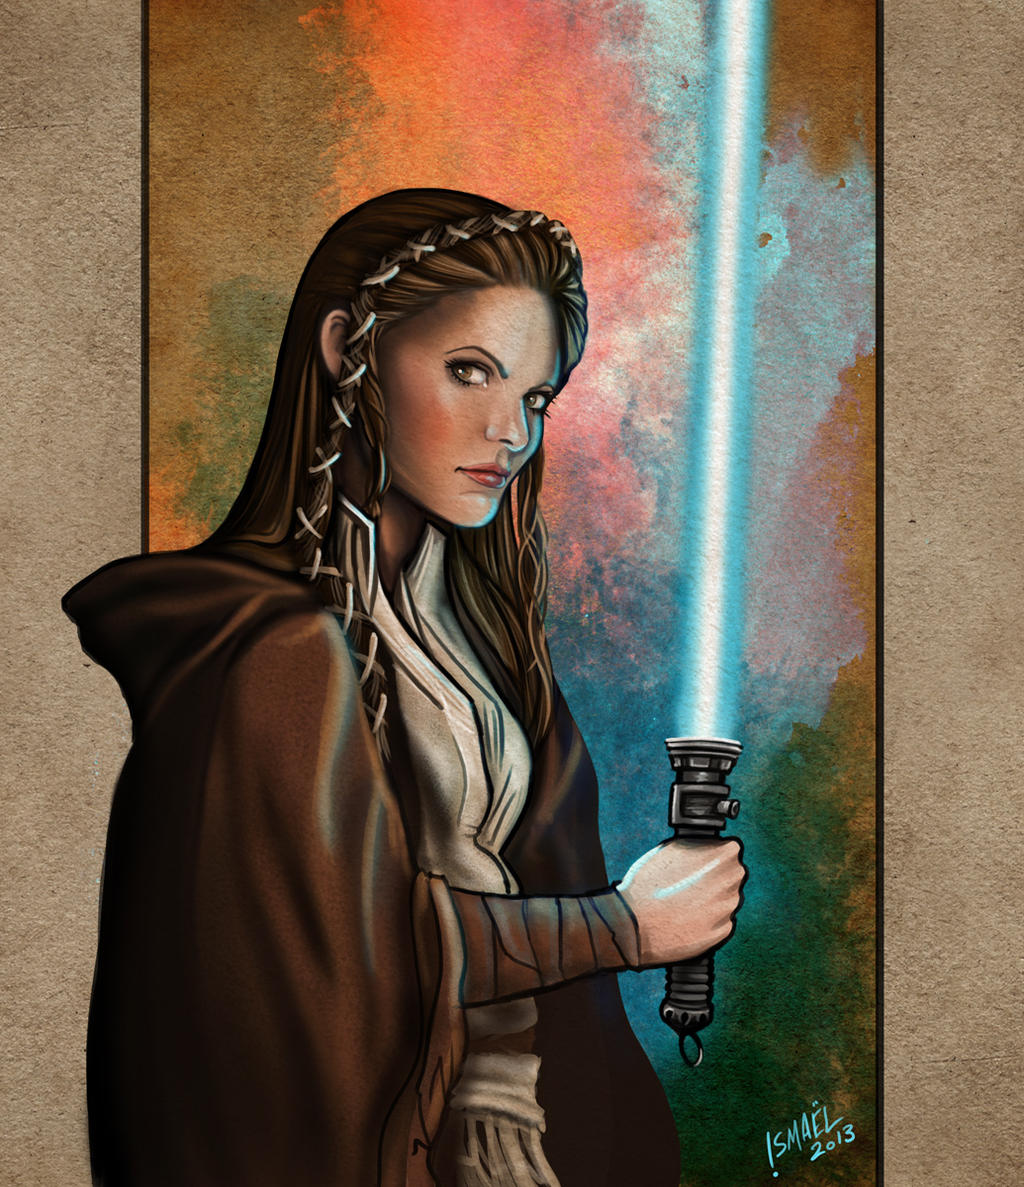 Jaina Leia Solo jedi, Star Wars episode 7 by ismaelArt